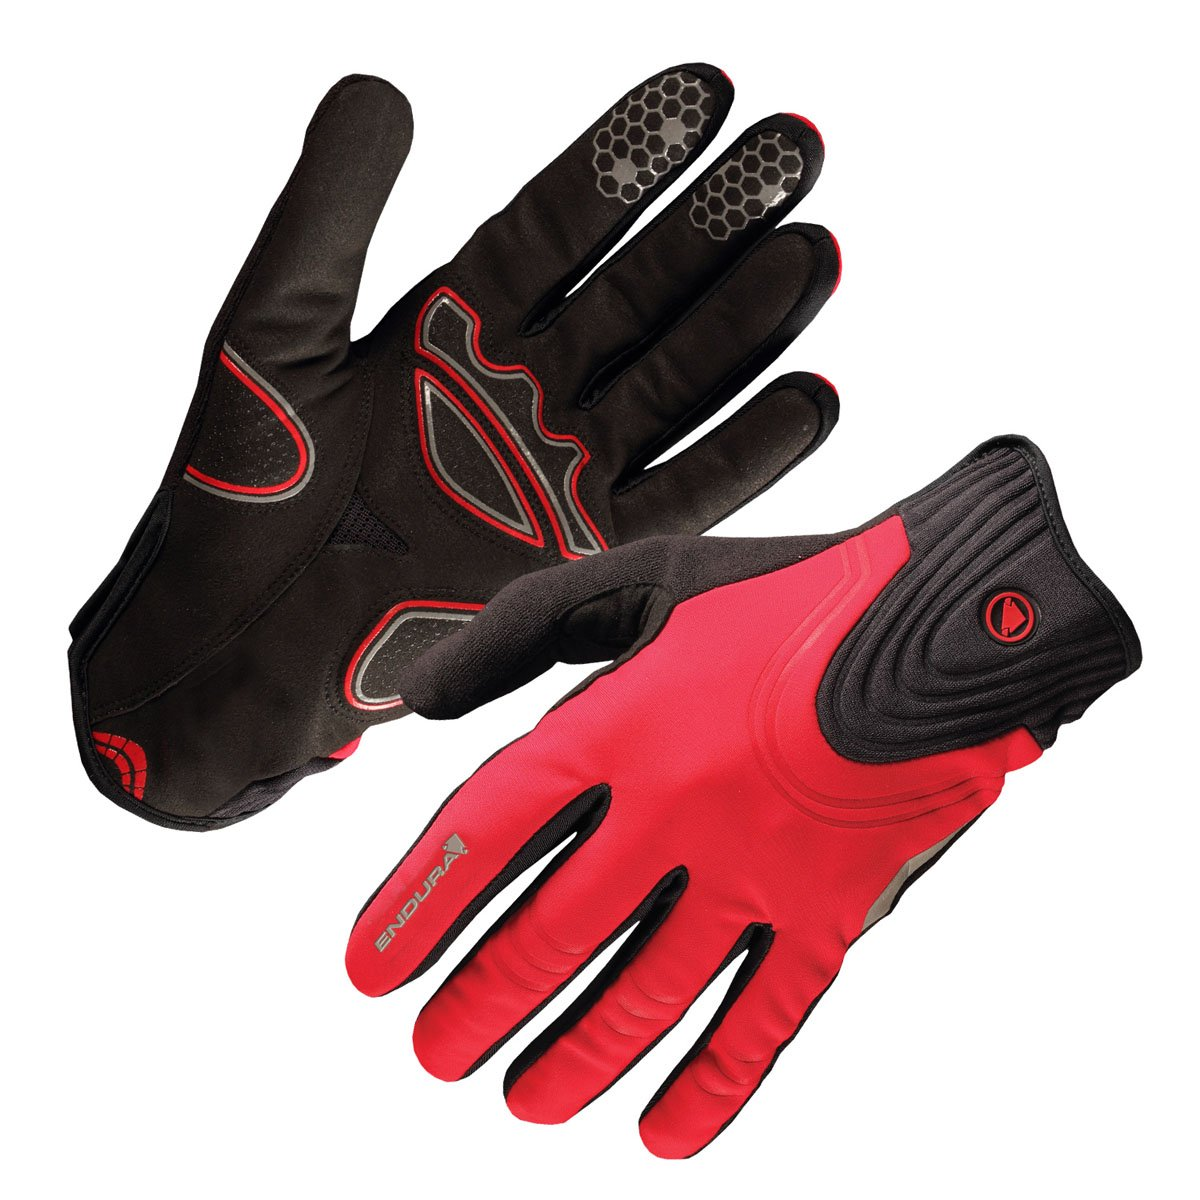 Endura 2015 Windchill Full Finger Cycling Glove - E0075 (Red - S)